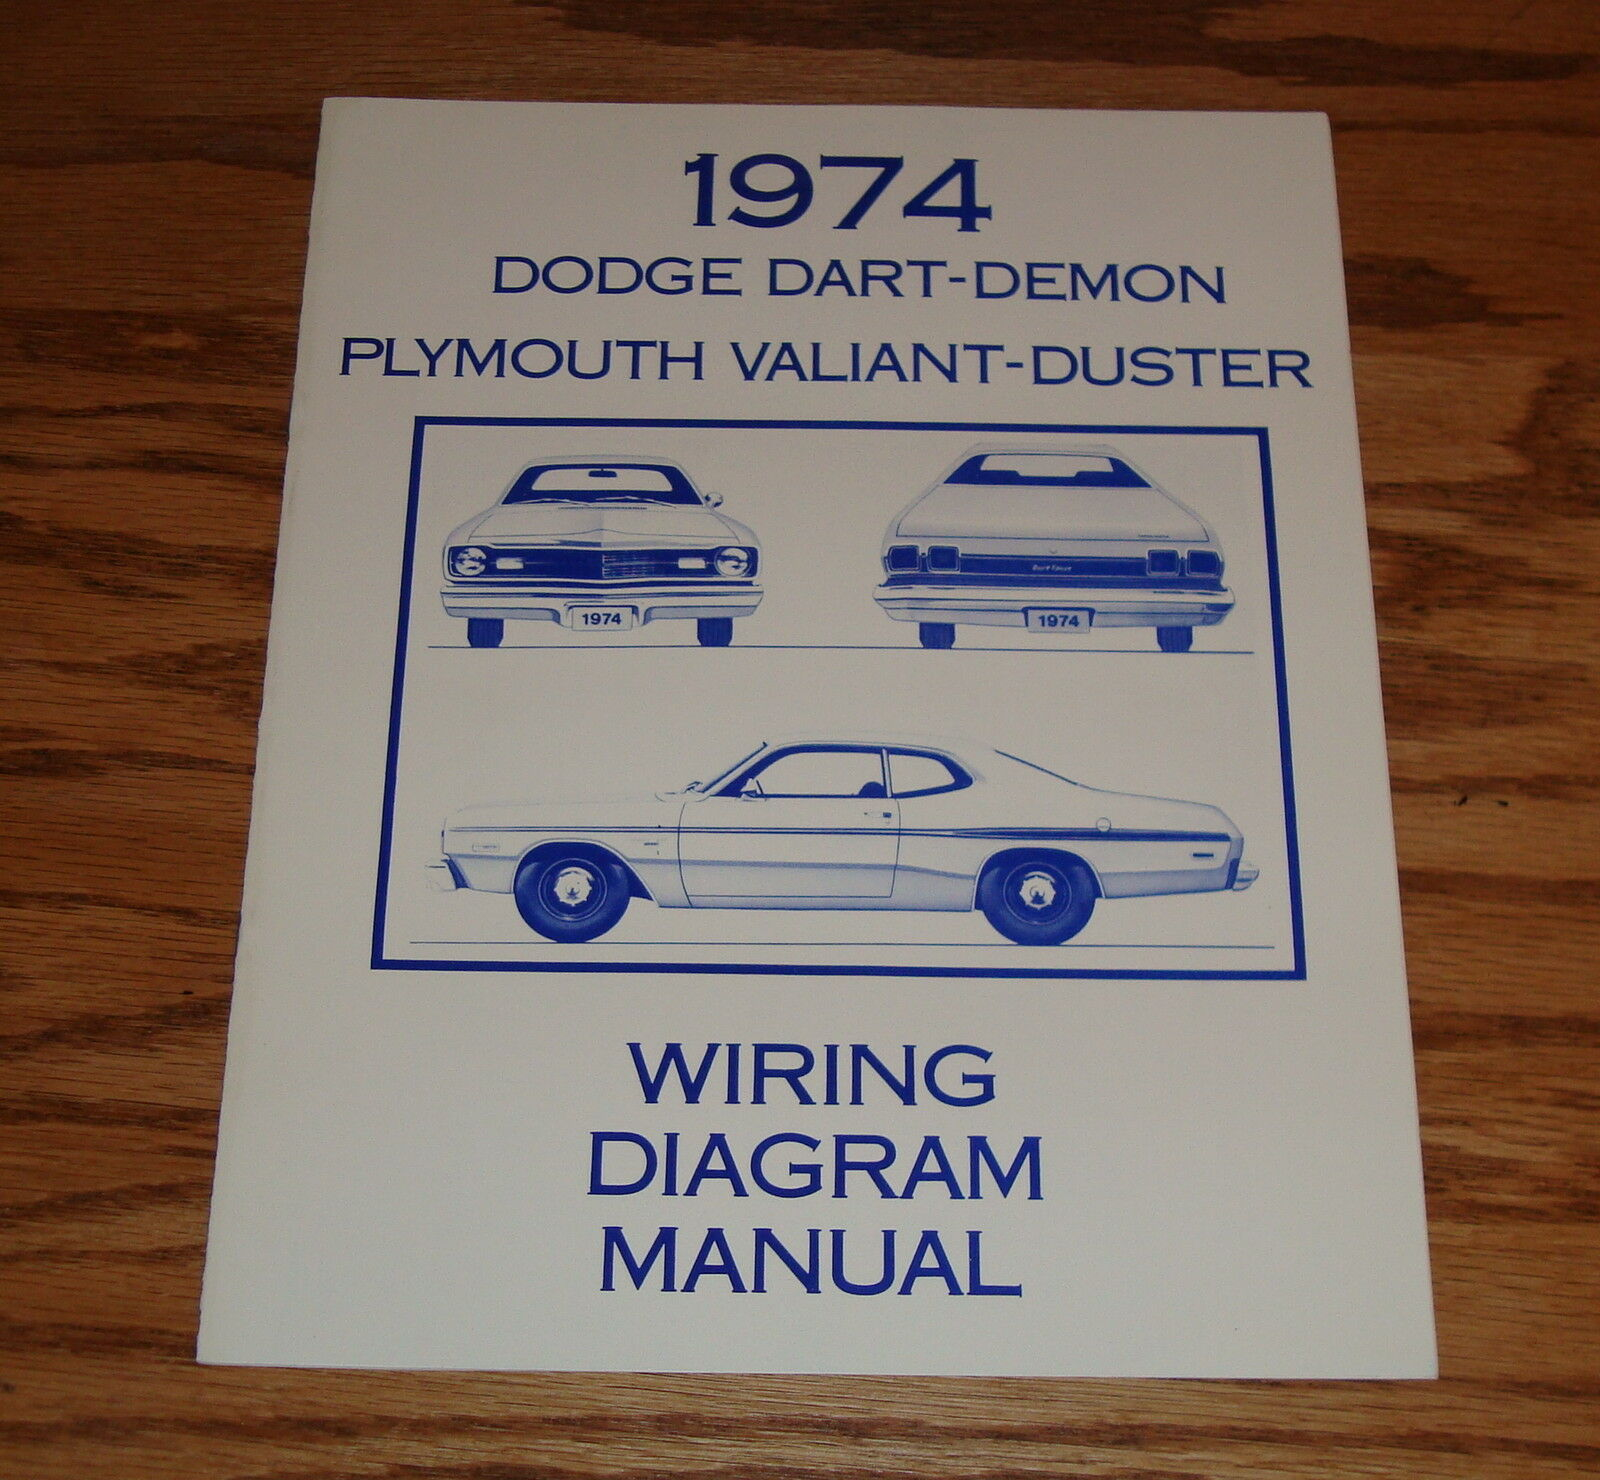 1974 Dodge Dart Wiring Diagram Wire Center Charger Diagrams Demon Plymouth Valiant Duster Manual Rh Picclick Com 1973